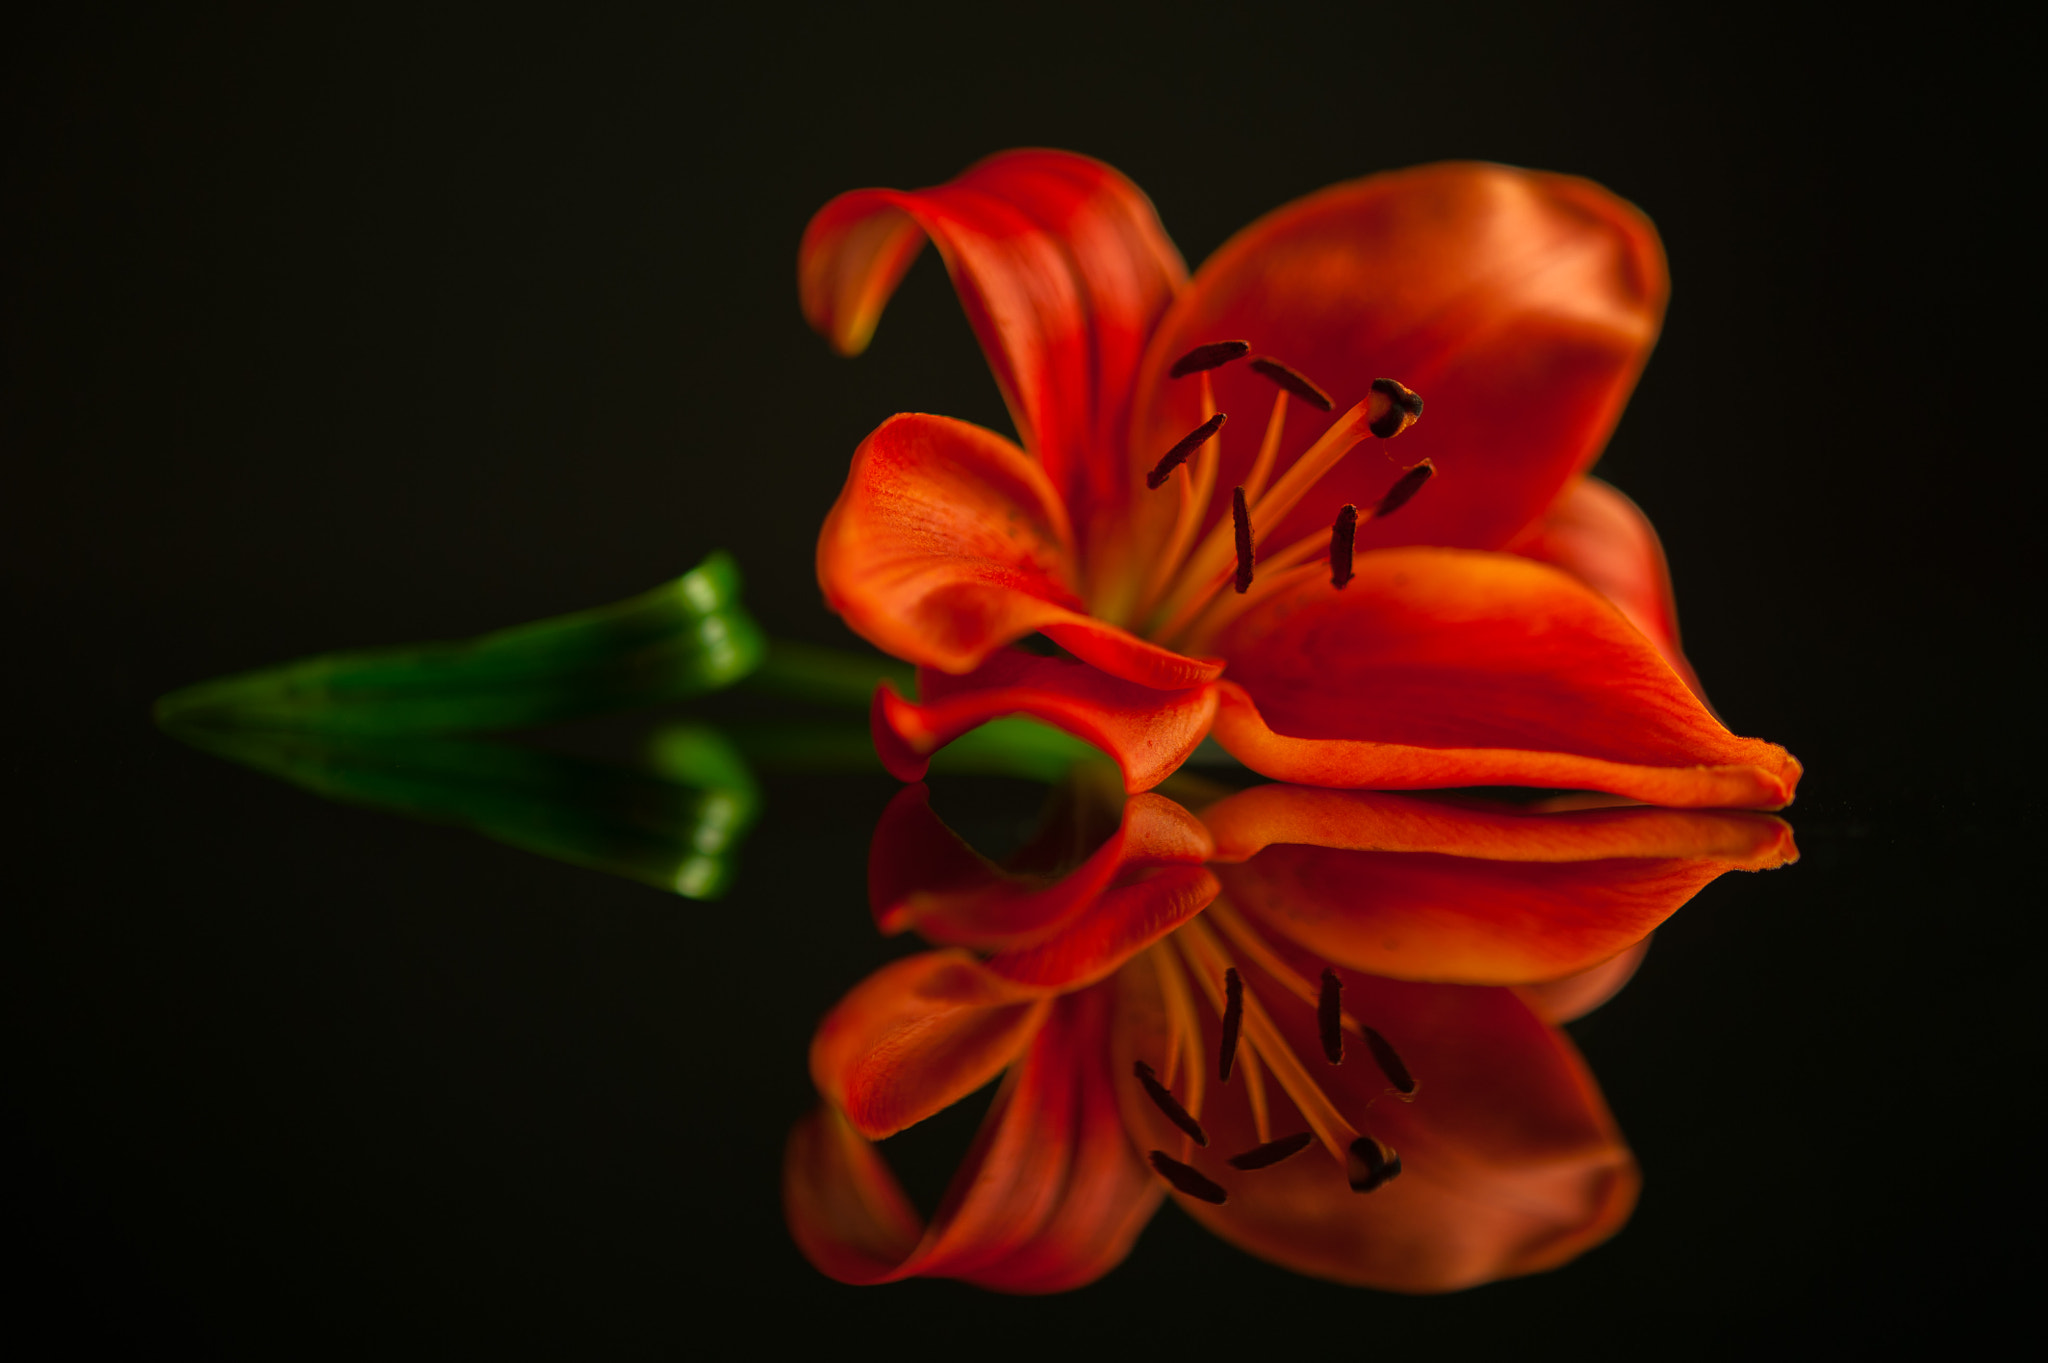 Photograph Red Lily by Jenni Lucas on 500px